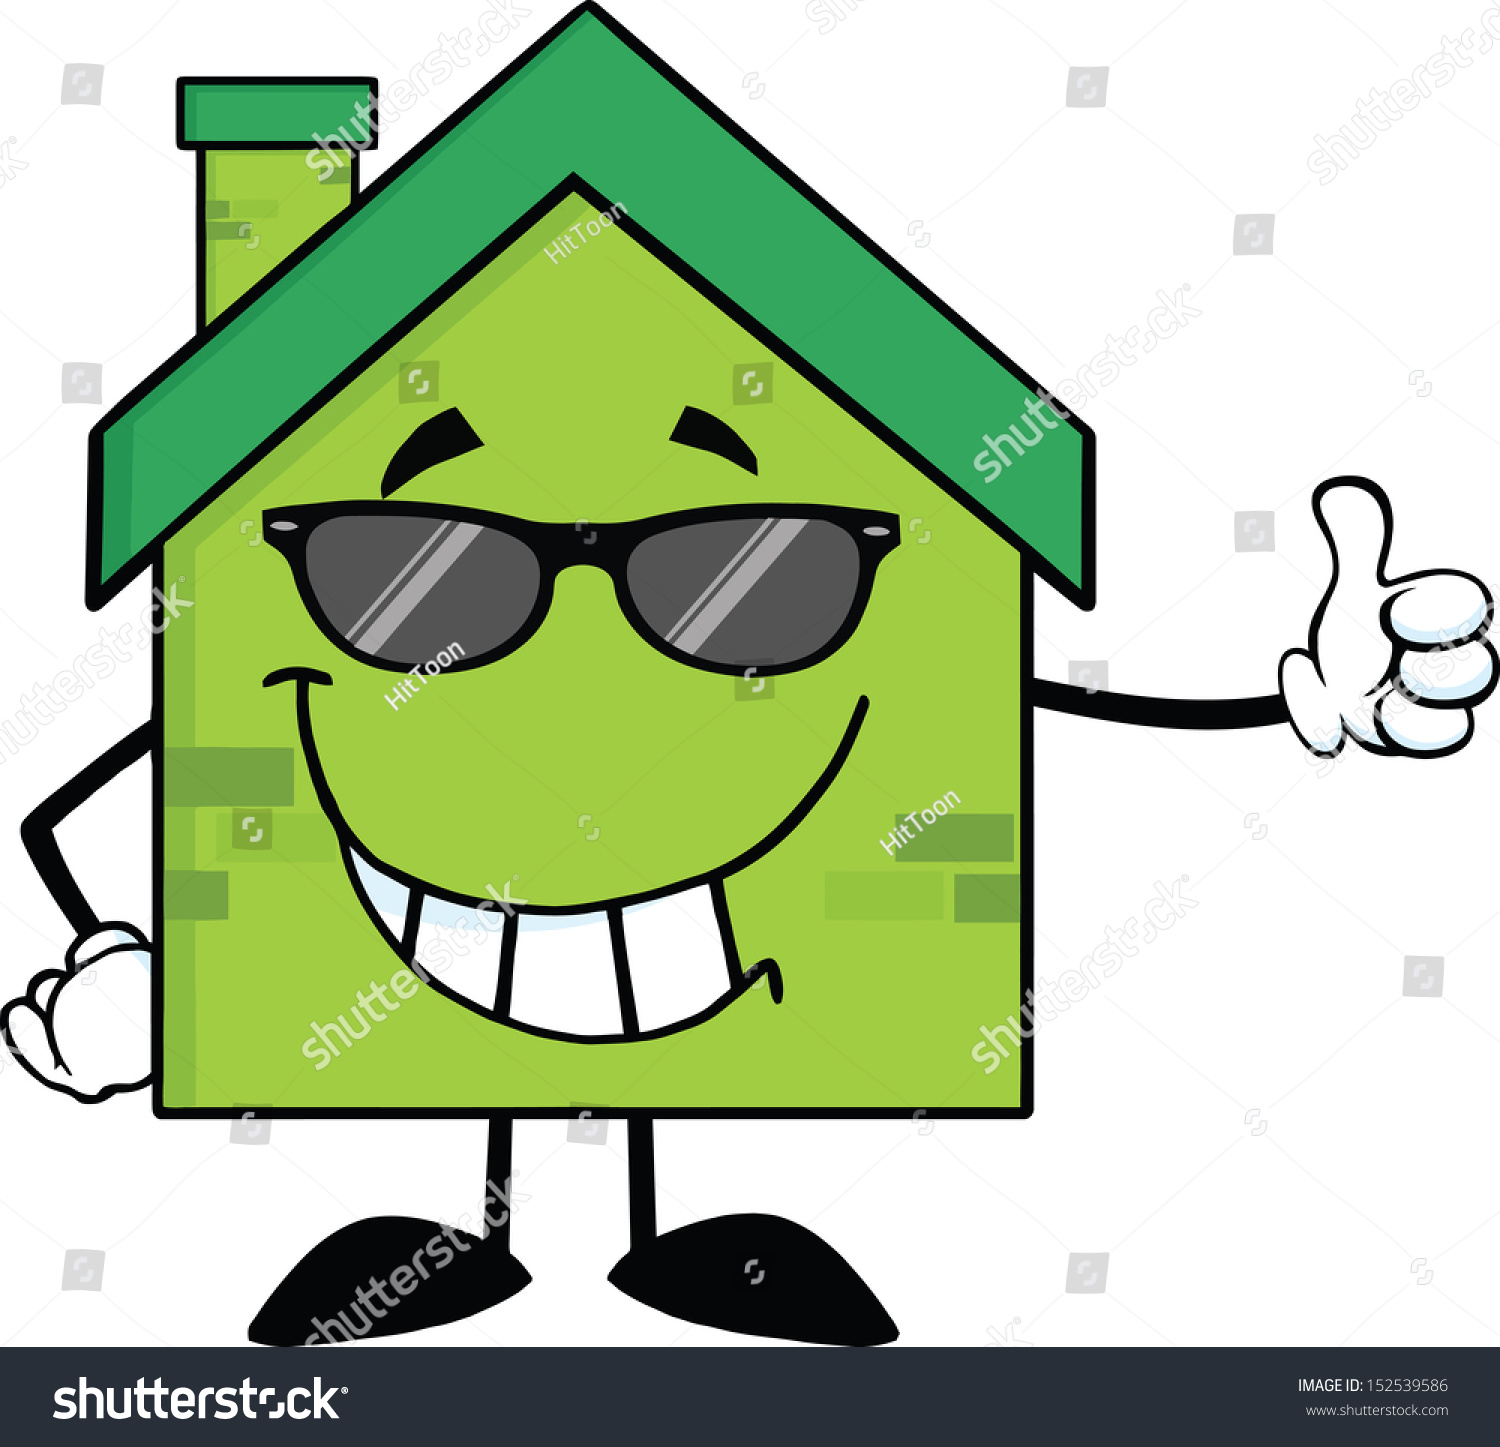 Cartoon Characters Houses : Green eco house cartoon character sunglasses stock vector